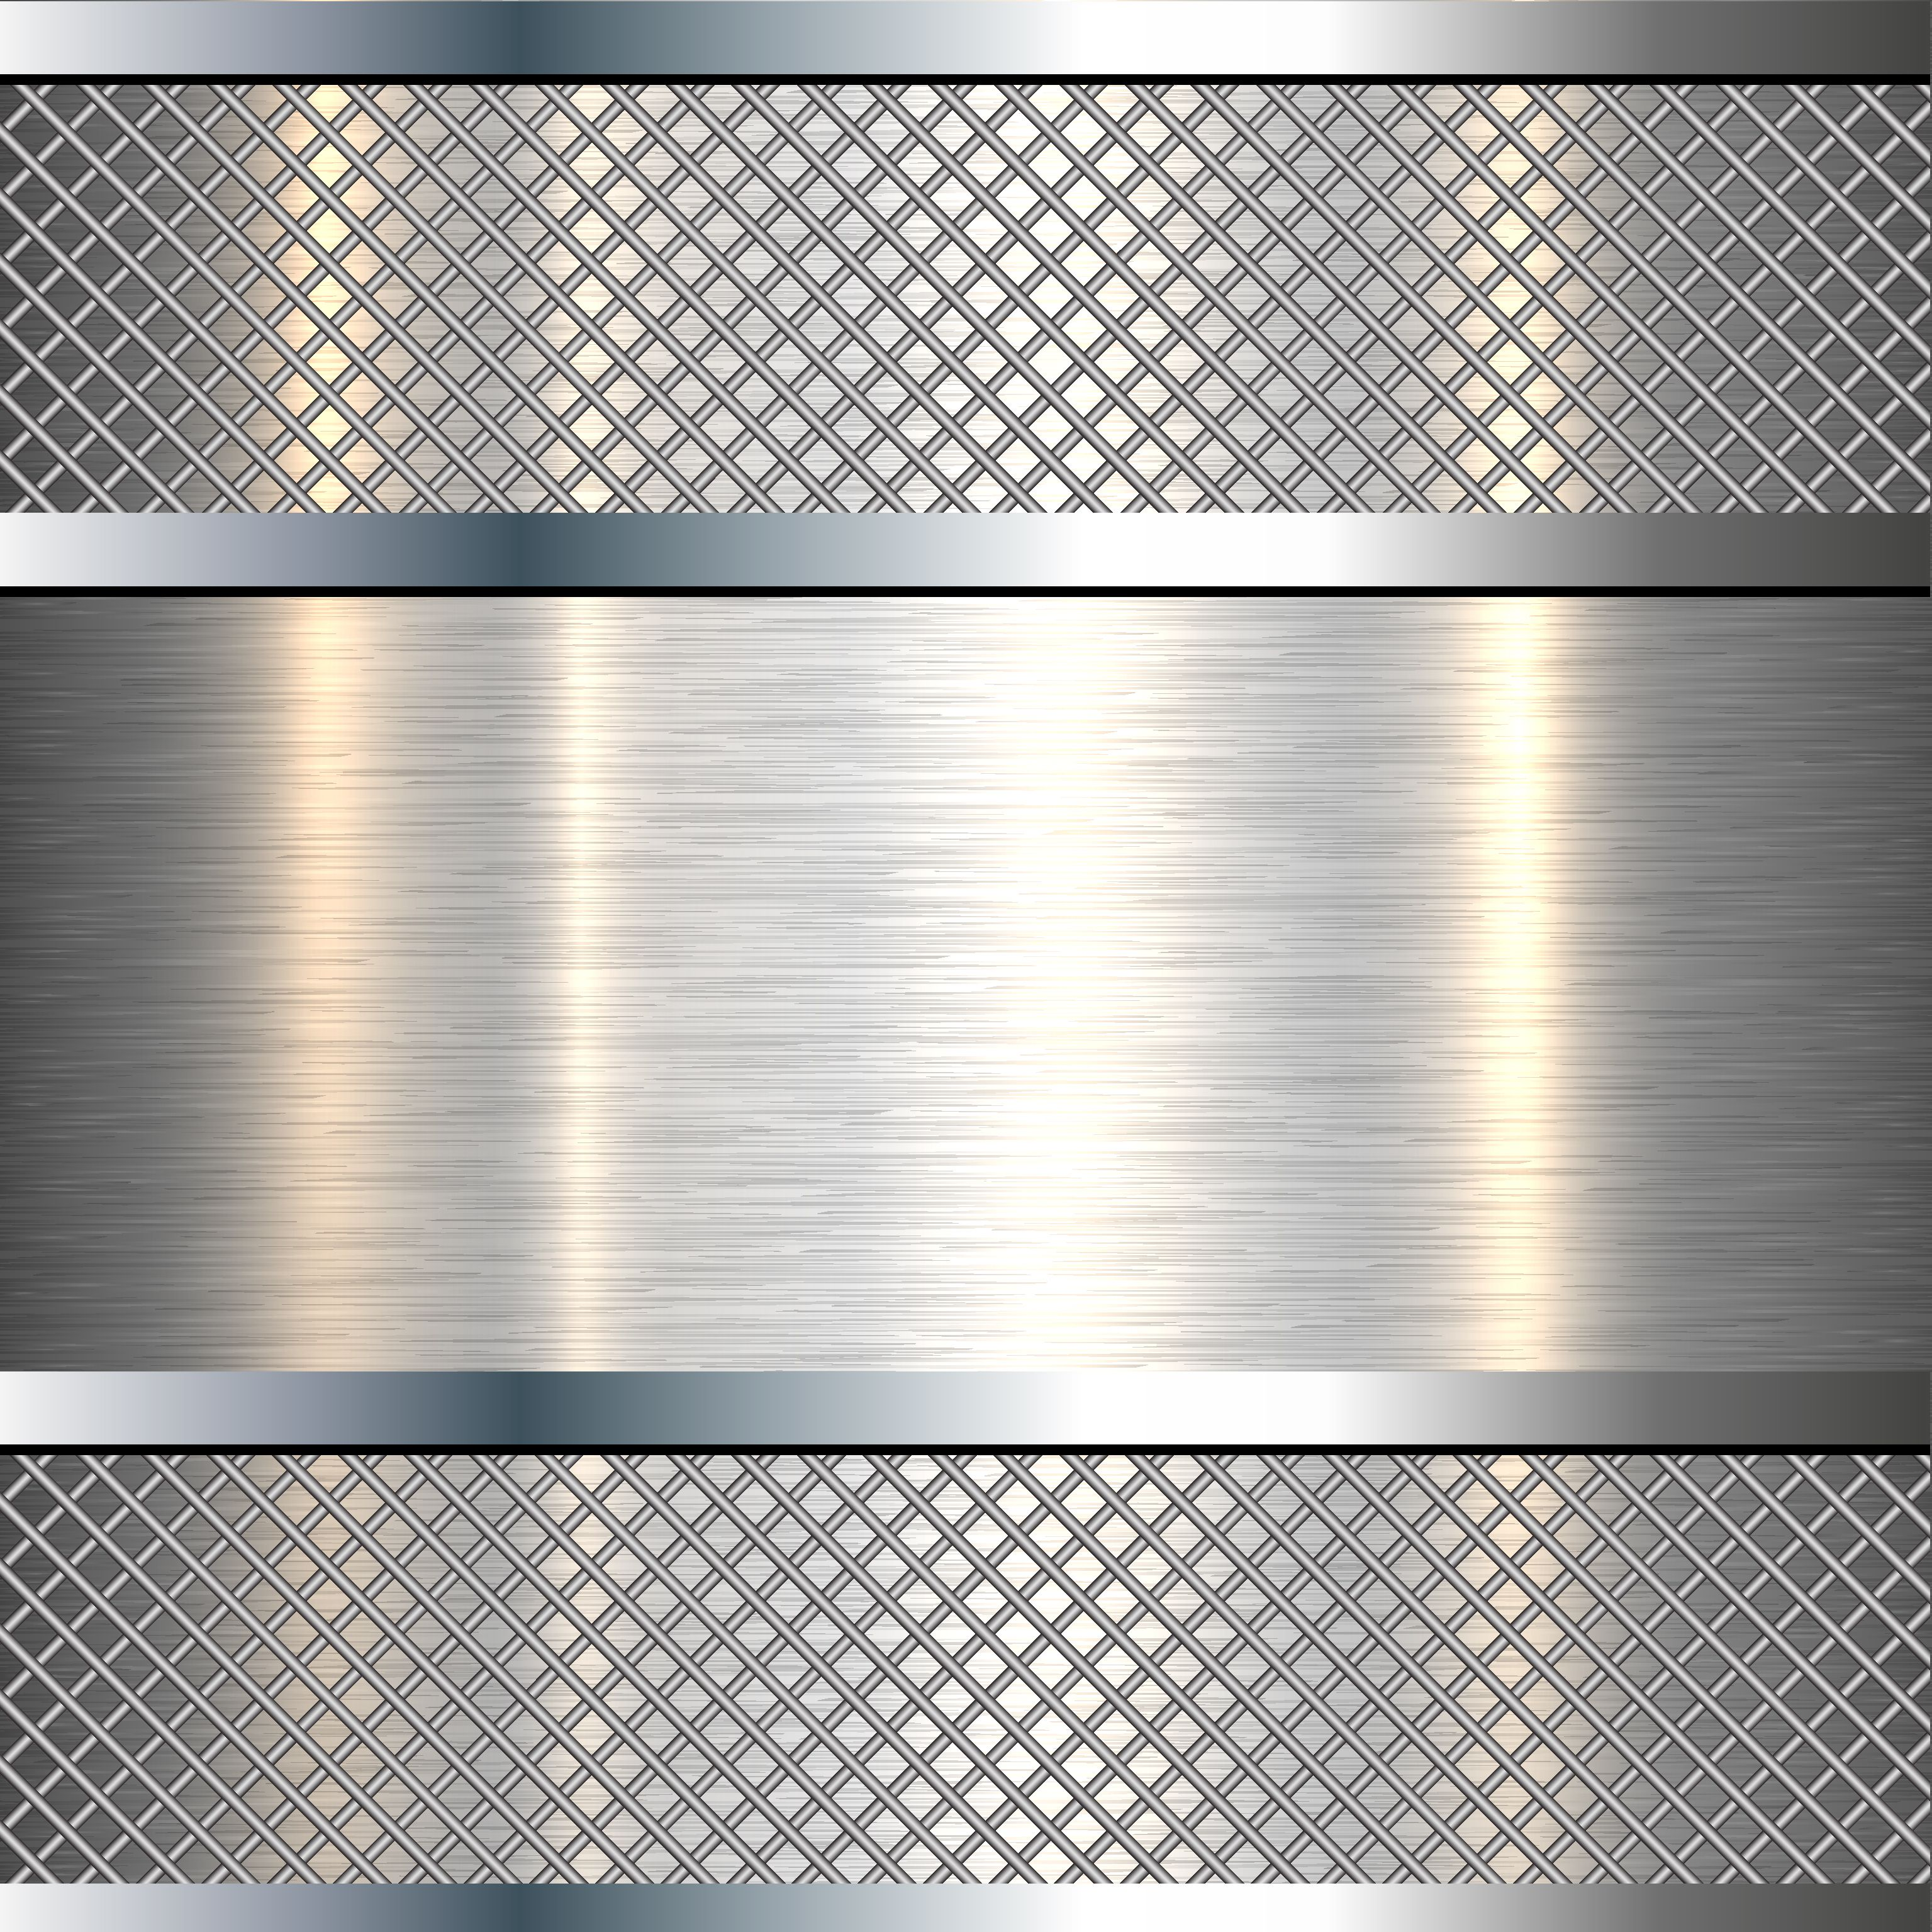 Silver Mesh Texture Background in 2020 Textured